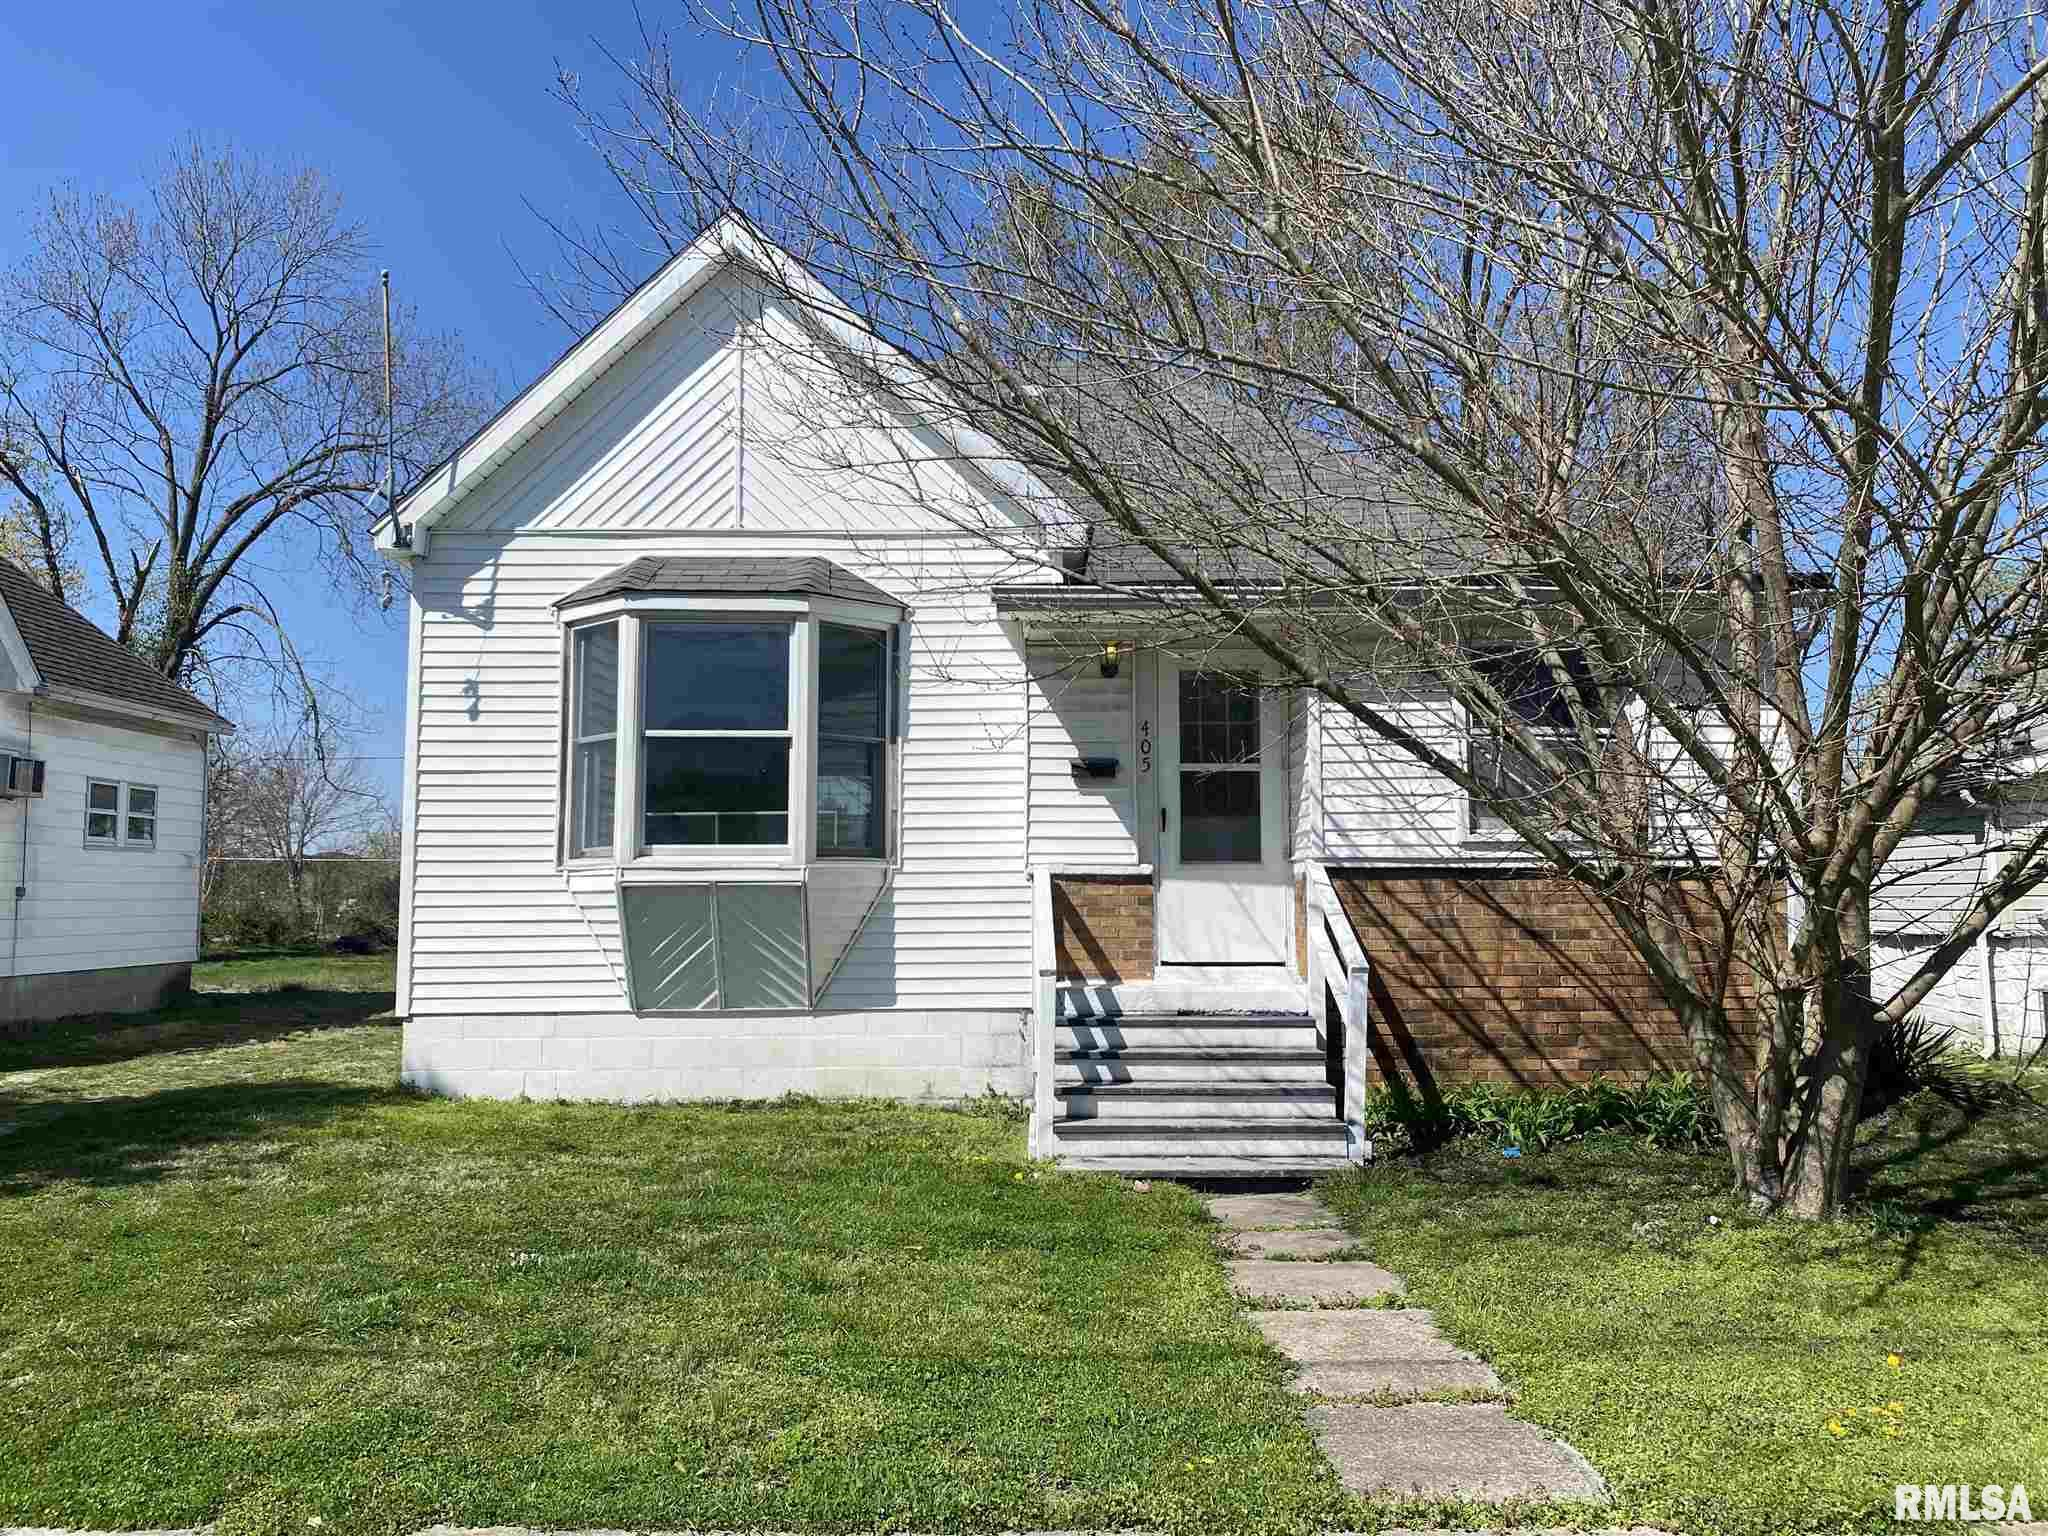 405 W HELEN Property Photo - Christopher, IL real estate listing